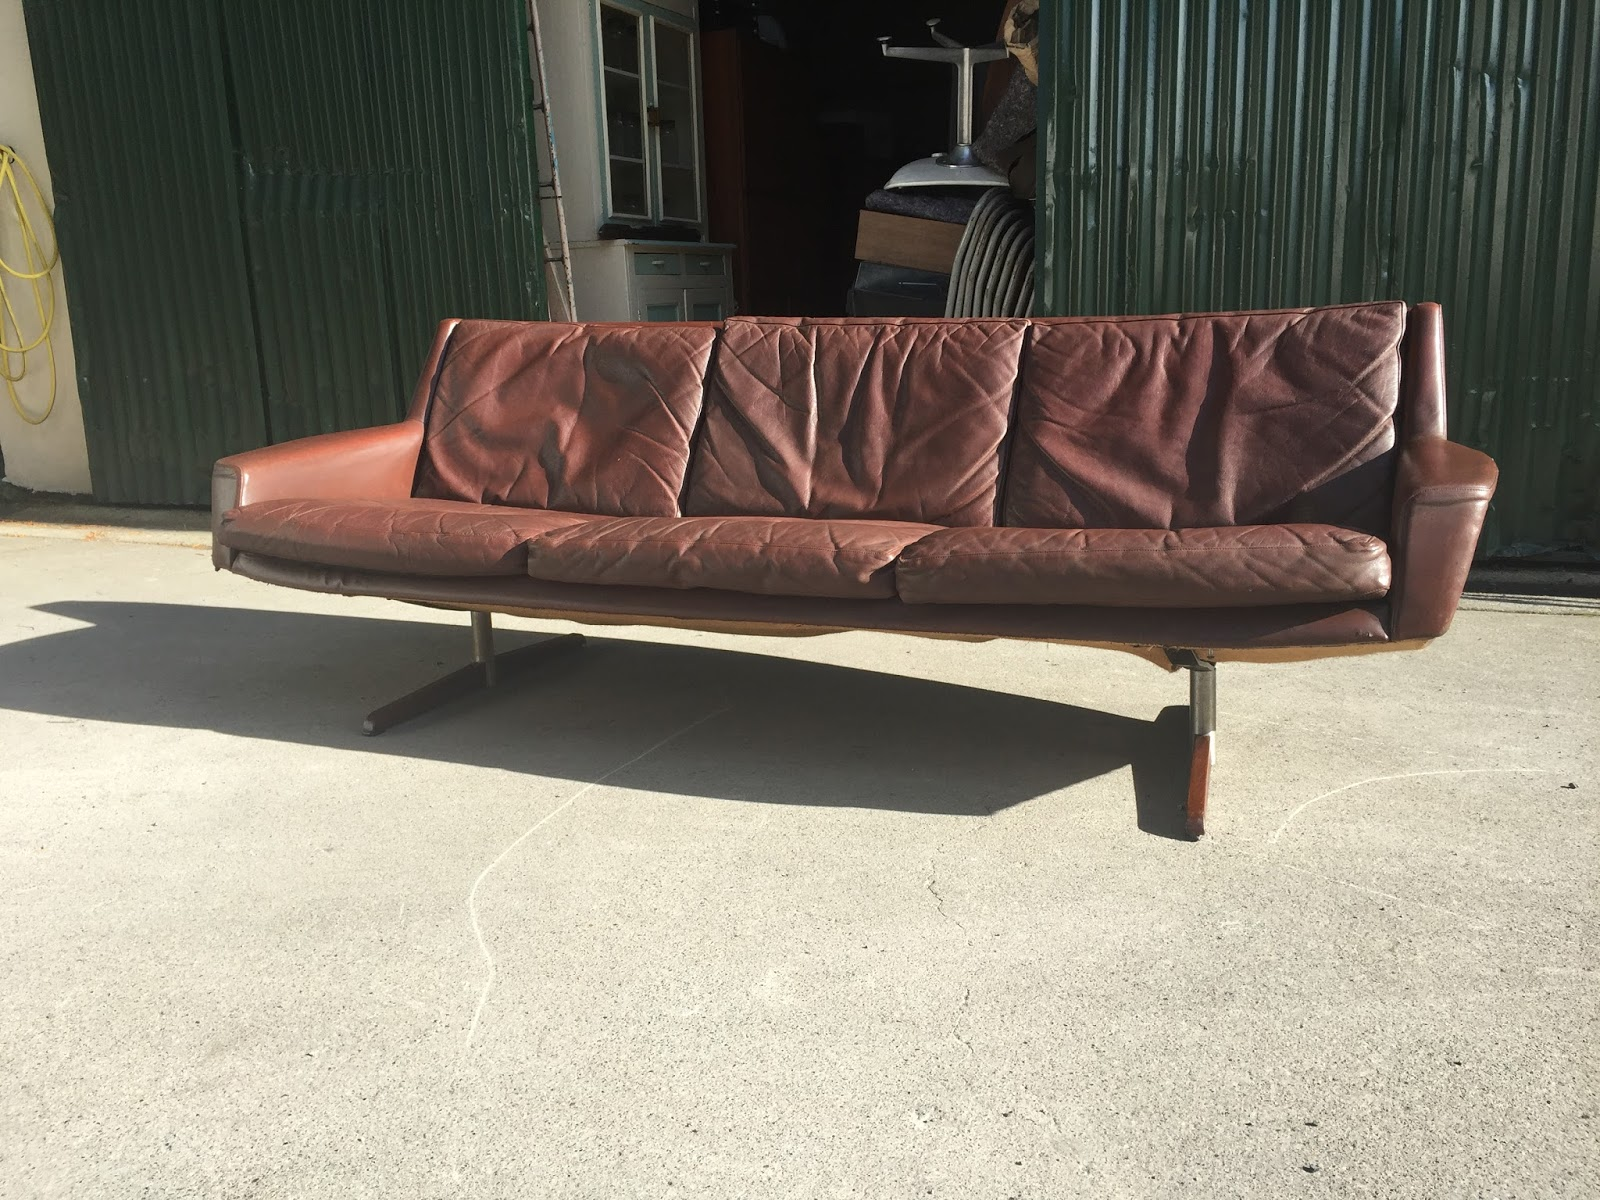 Original Compulsive Design Danish Sofa Attributed To Fredrik Kayser